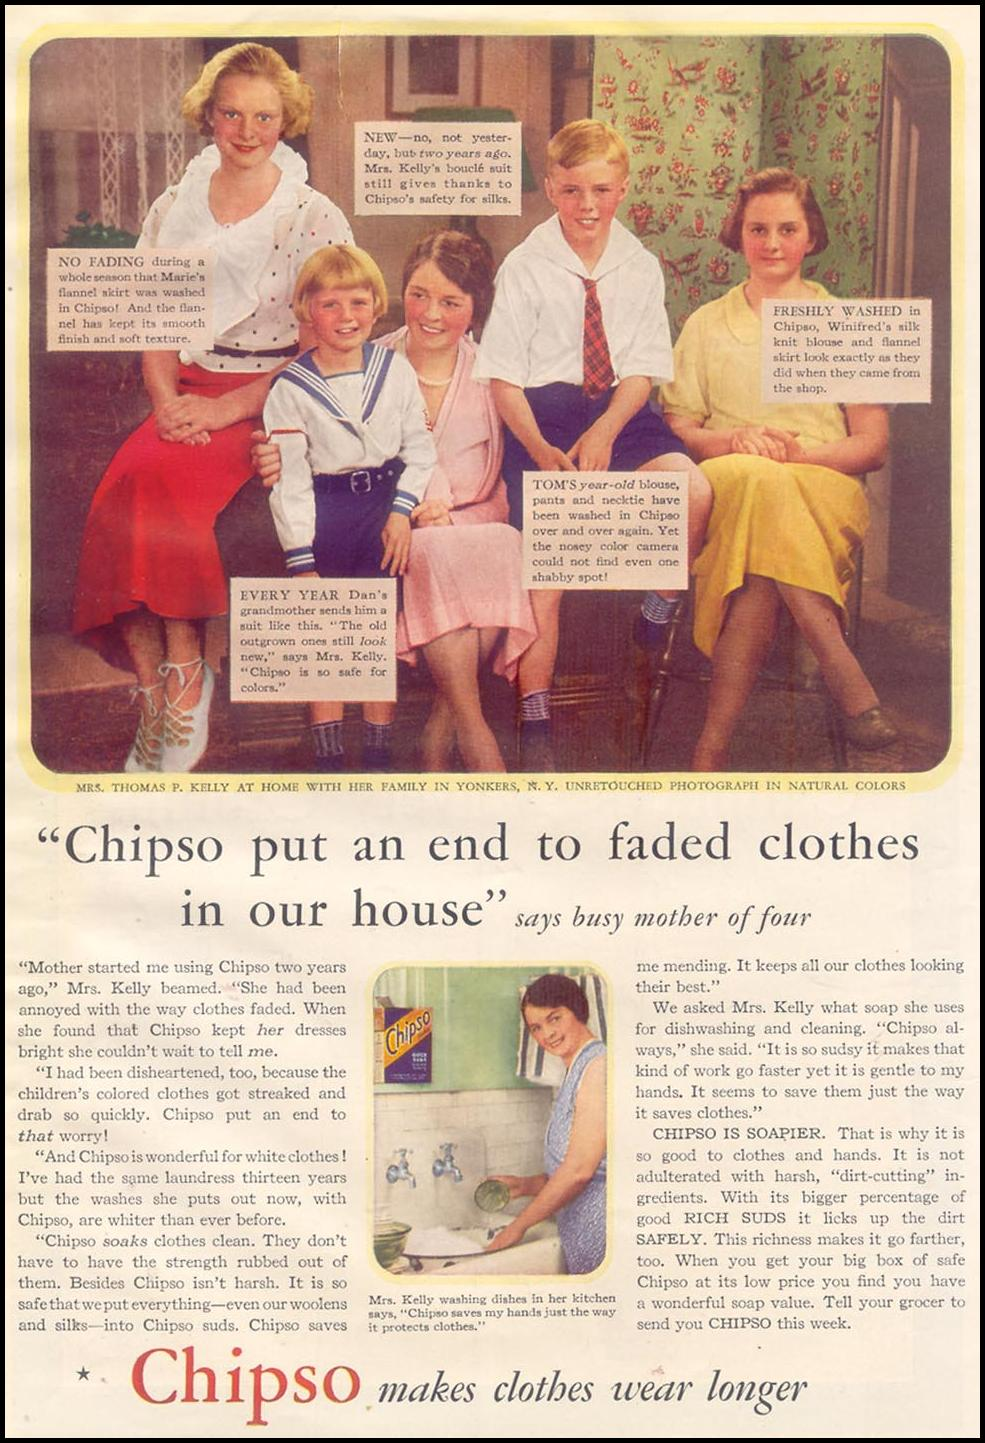 CHIPSO SOAP FLAKES